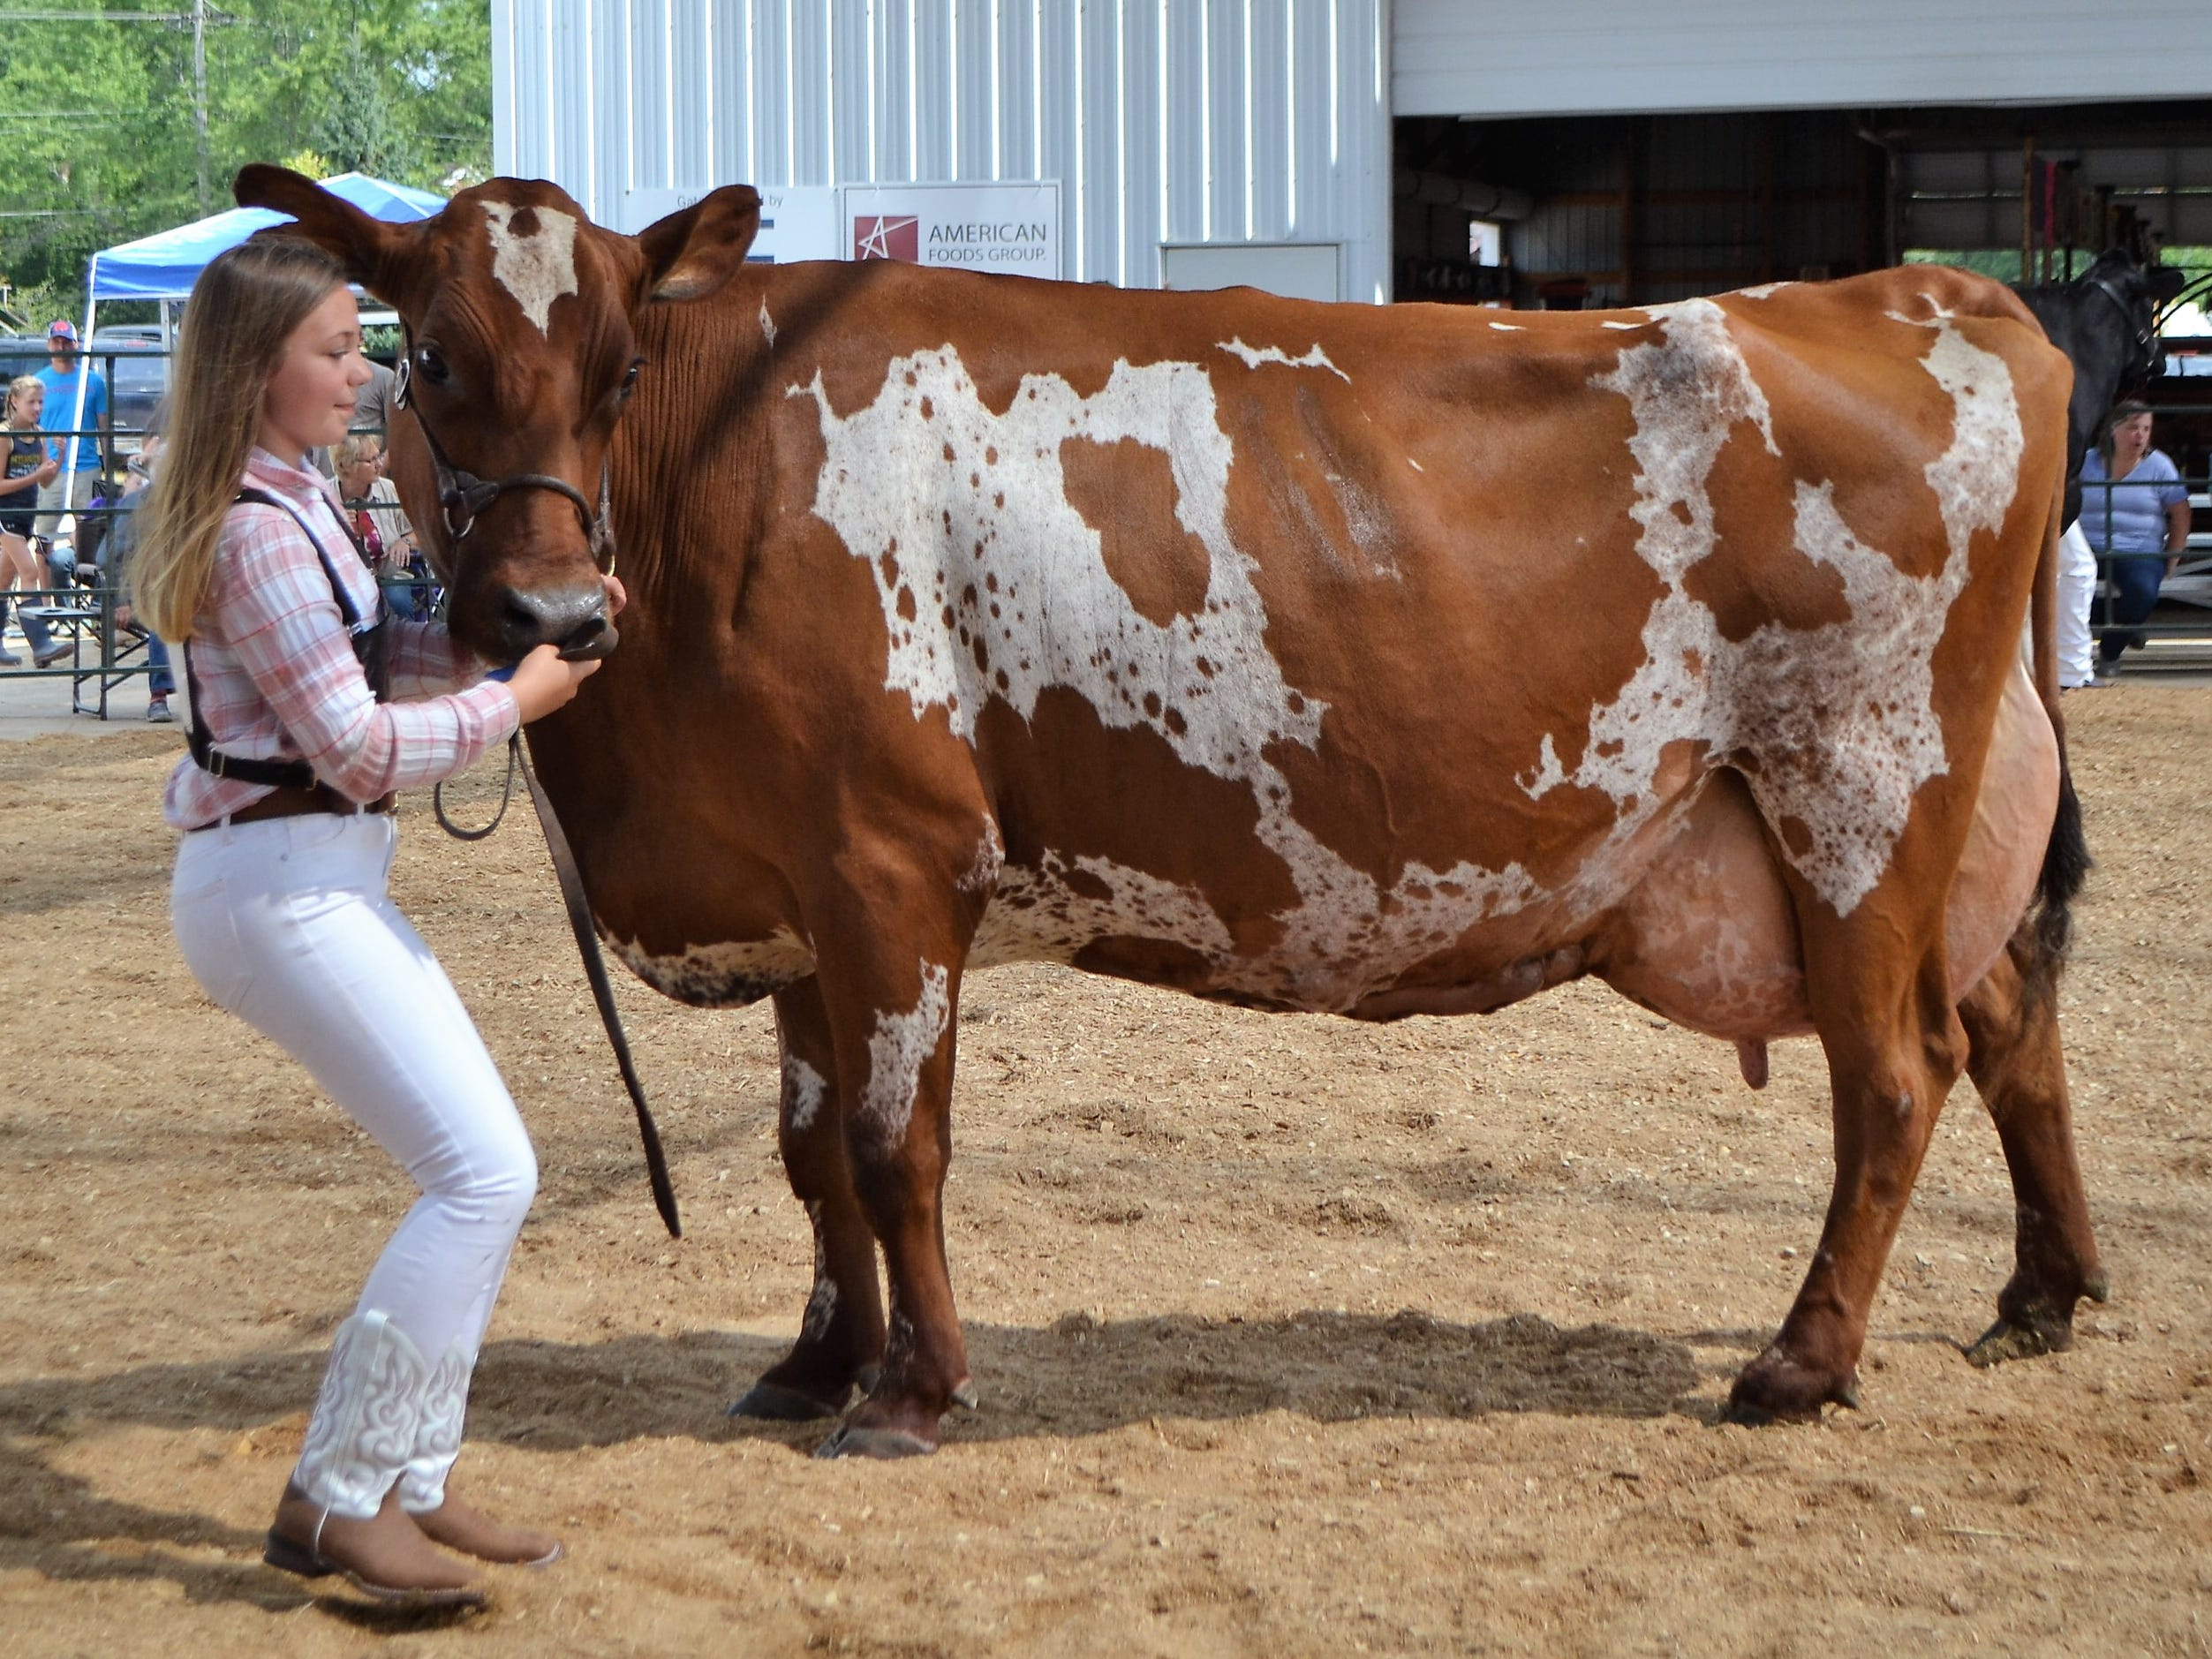 Hope Hahn of Northern Riders 4-H Club won grand champion honors her Ayrshire in the Junior Dairy Cattle Judging at the Oconto County Fair on Saturday, Aug. 18.